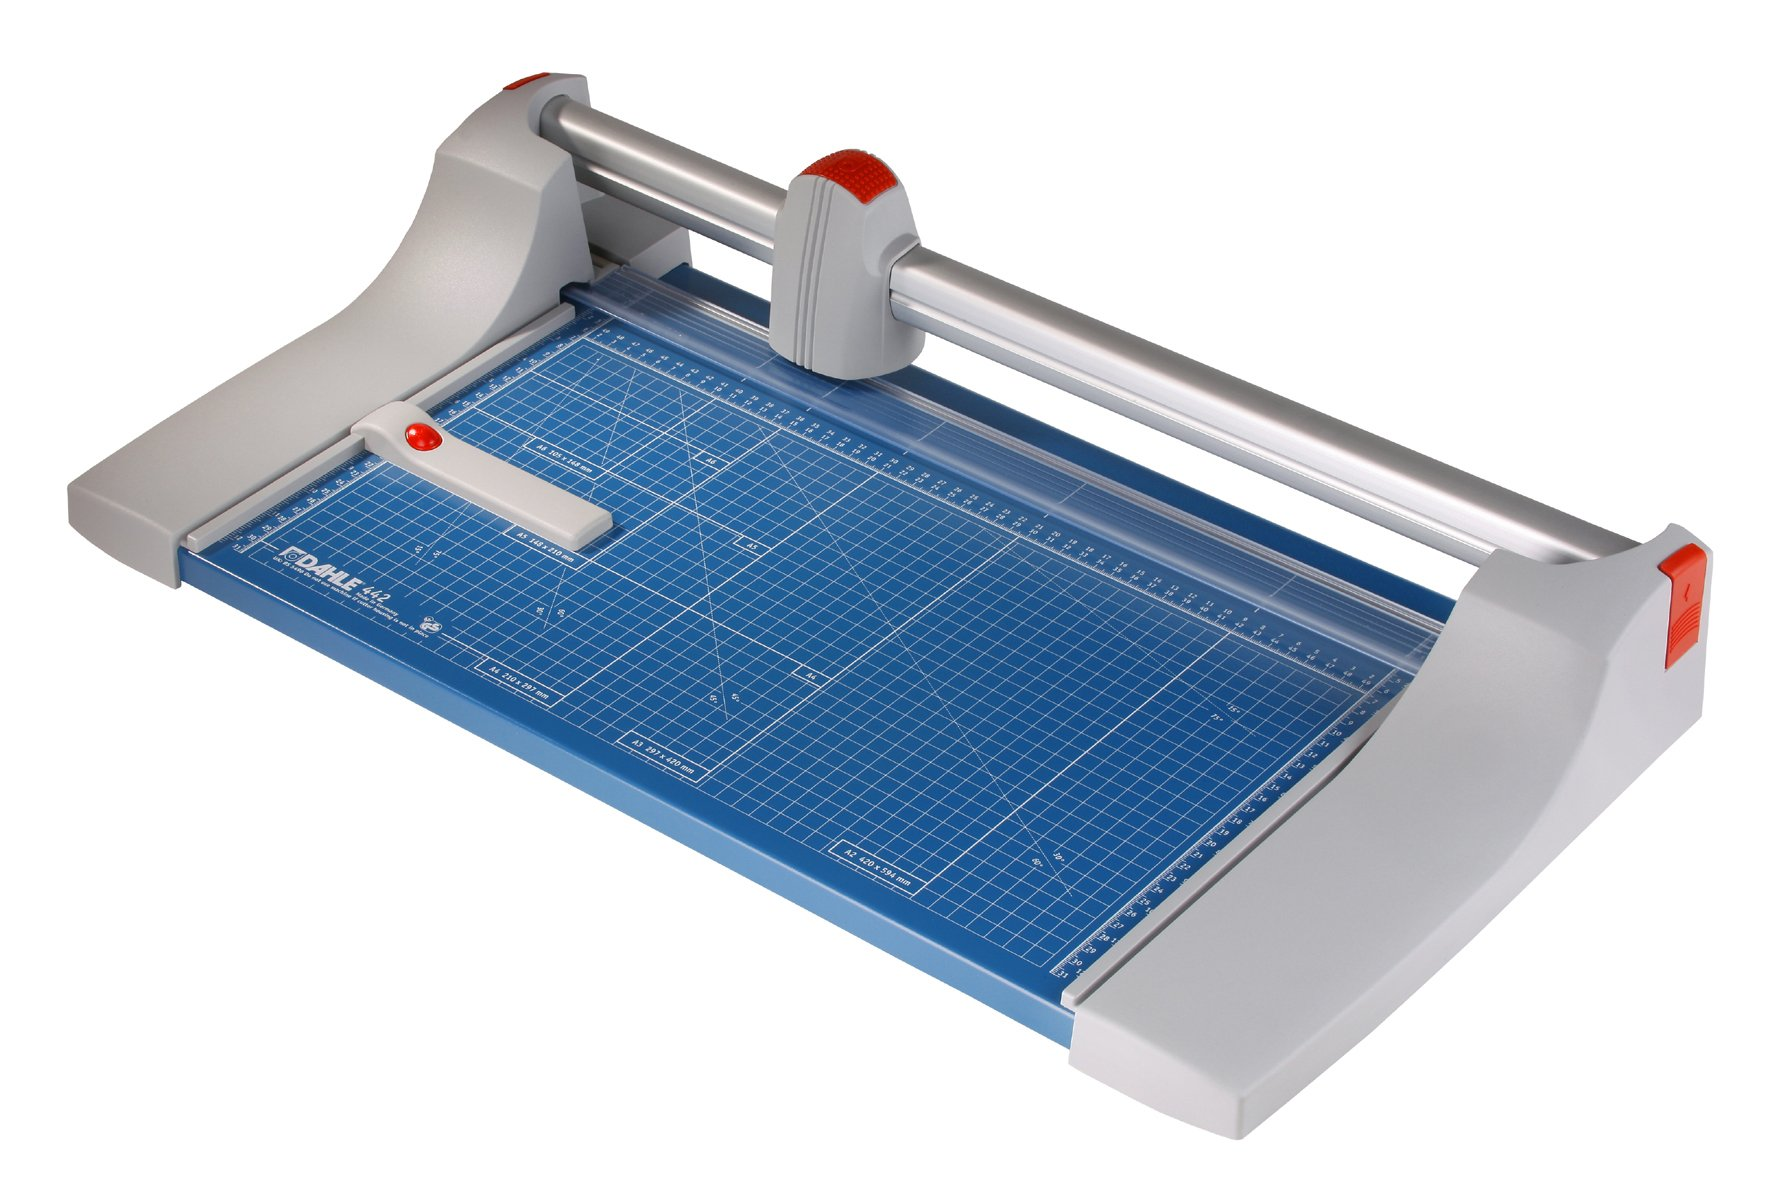 Dahle 442 Premium Rolling Trimmer, 20'' Cut Length, 30 Sheet, Precision Self-Sharpening Blade, Cuts in Either Direction, Automatic Paper Clamp